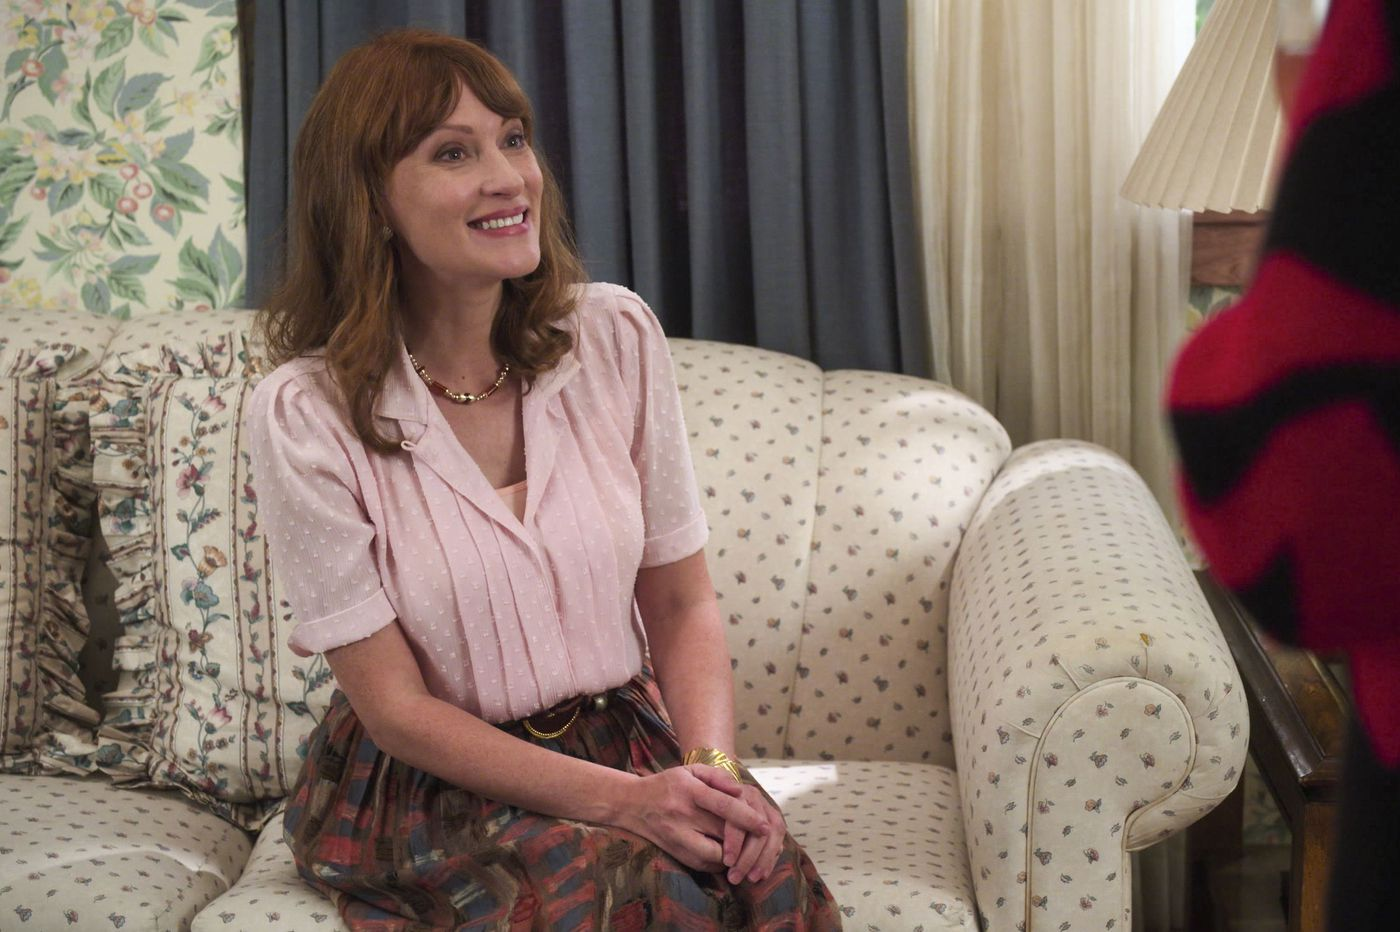 This 'Silver Linings Playbook' actress will play her real-life mom on 'The Goldbergs'